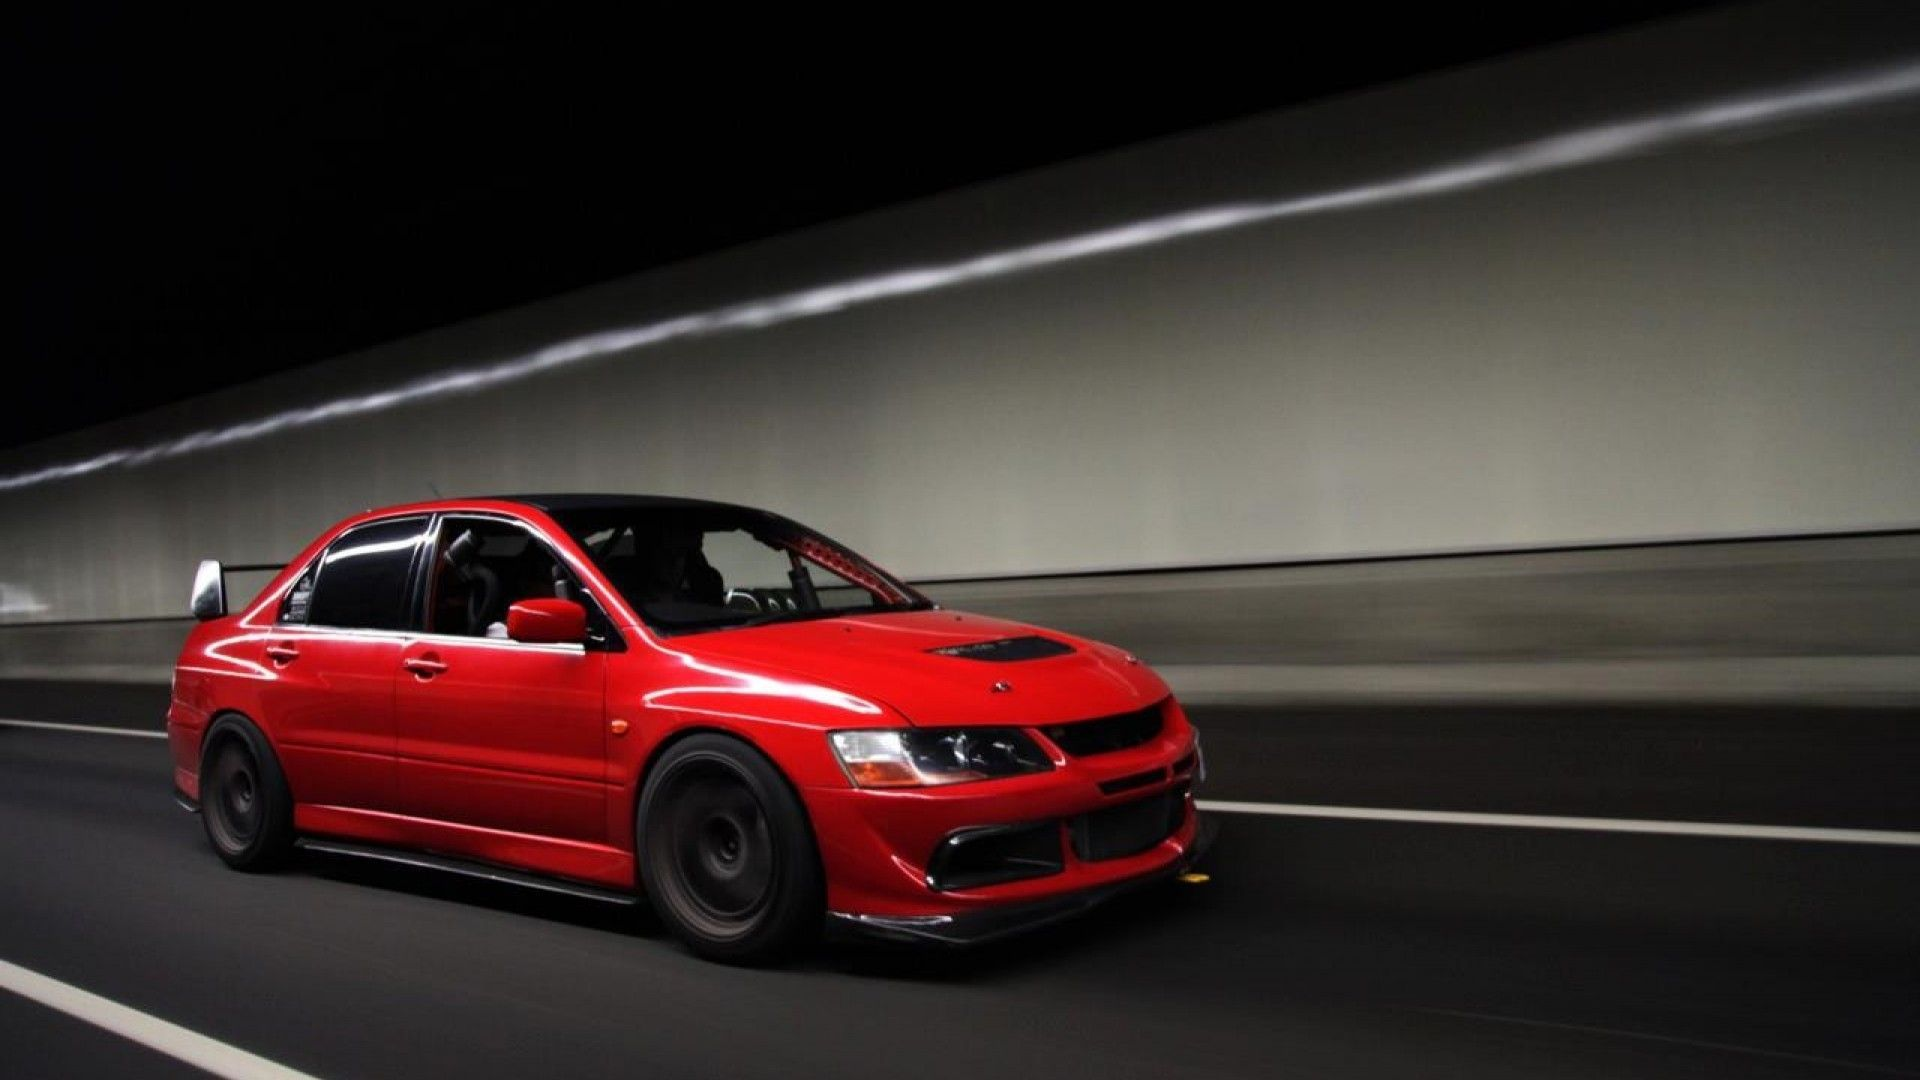 Mitsubishi Lancer Evo Wallpapers Wallpaper Cave With Images